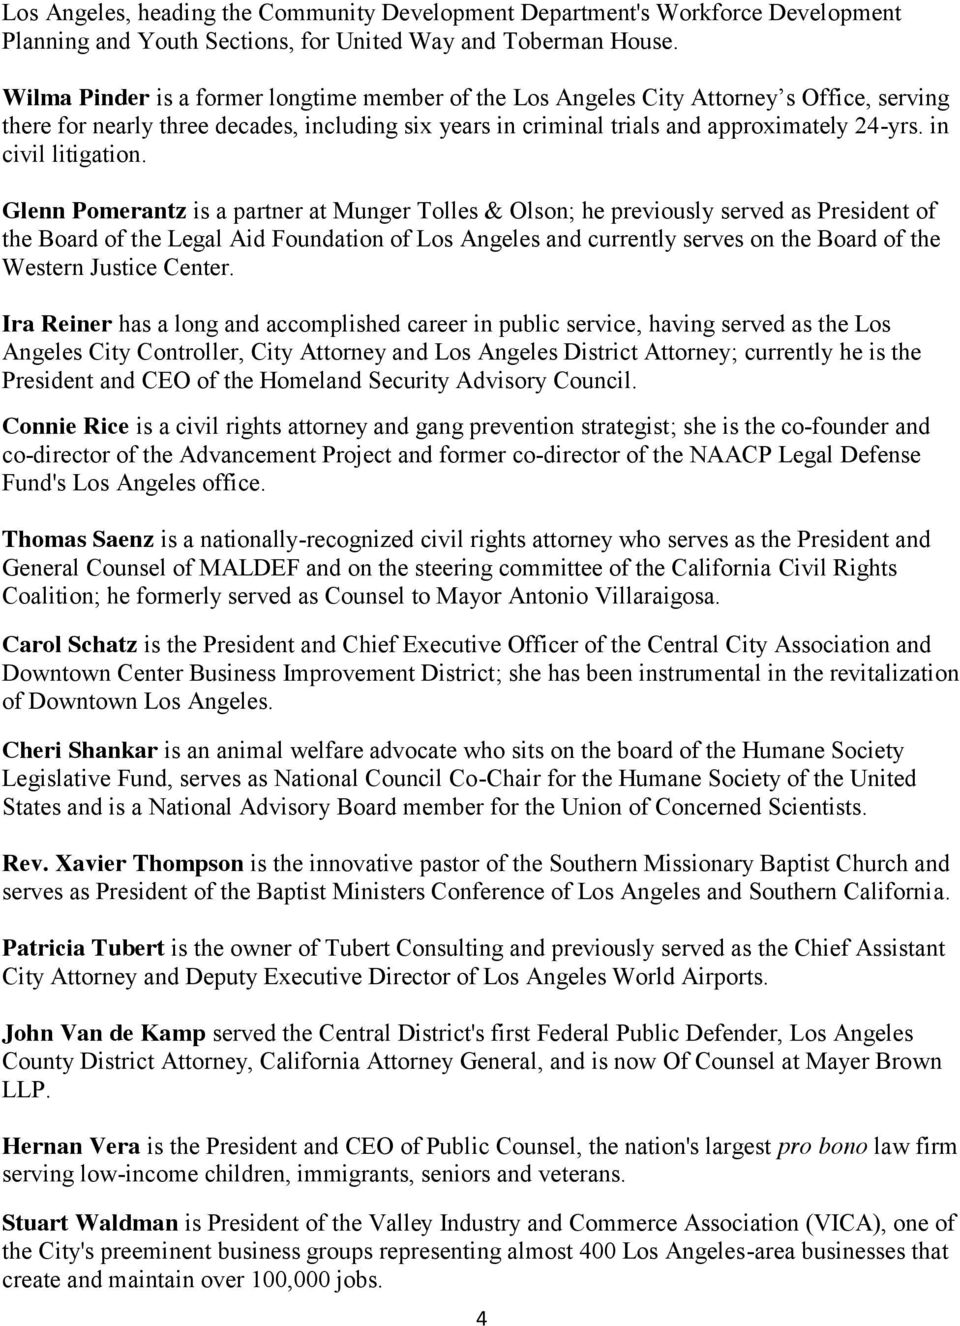 CITY ATTORNEY-ELECT MIKE FEUER'S TRANSITION TEAM - PDF